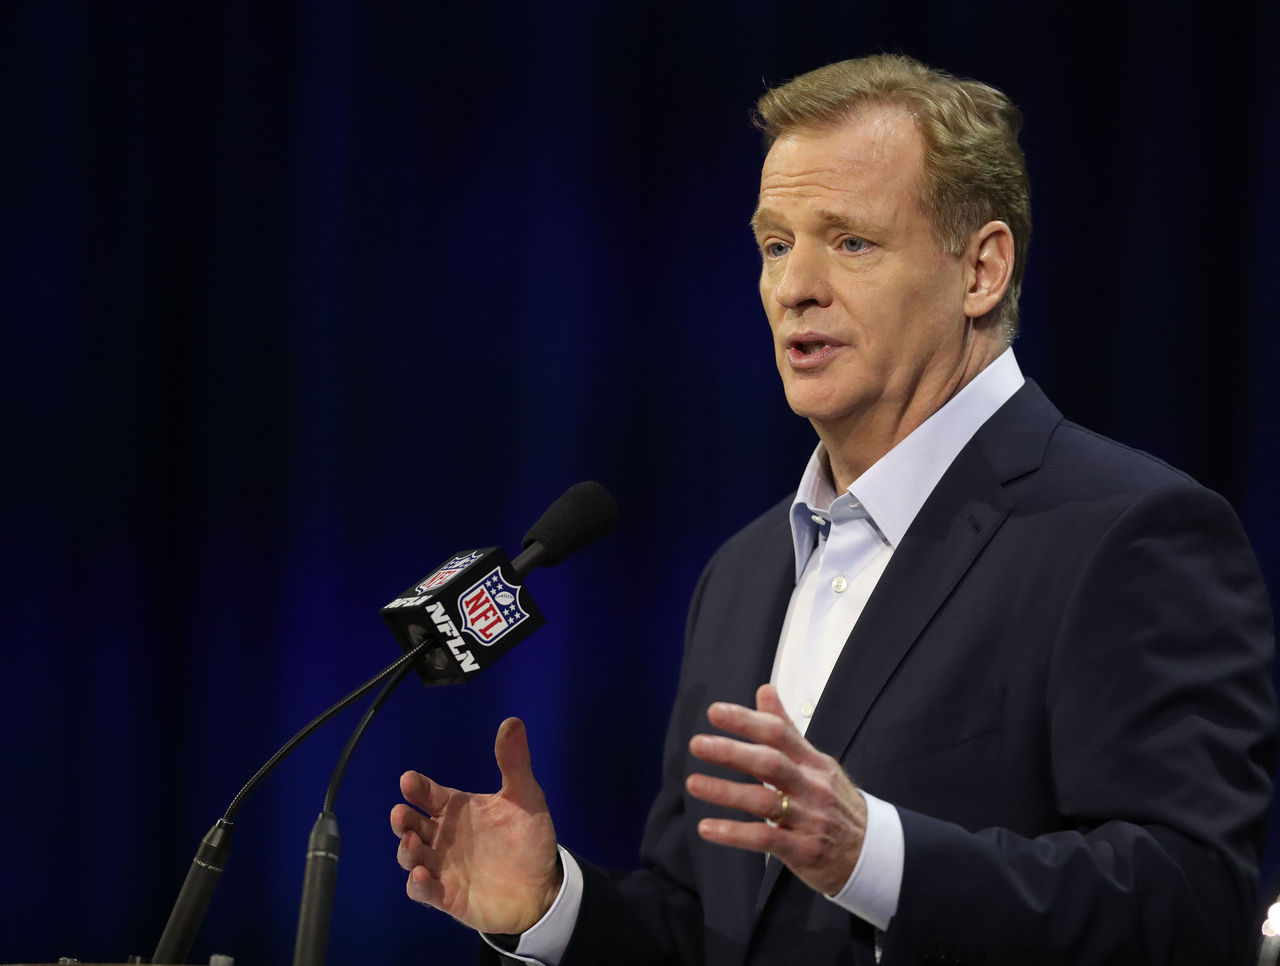 Cropped 2017 02 01t192758z 4839984 nocid rtrmadp 3 nfl super bowl li commissioner roger goodell press conference